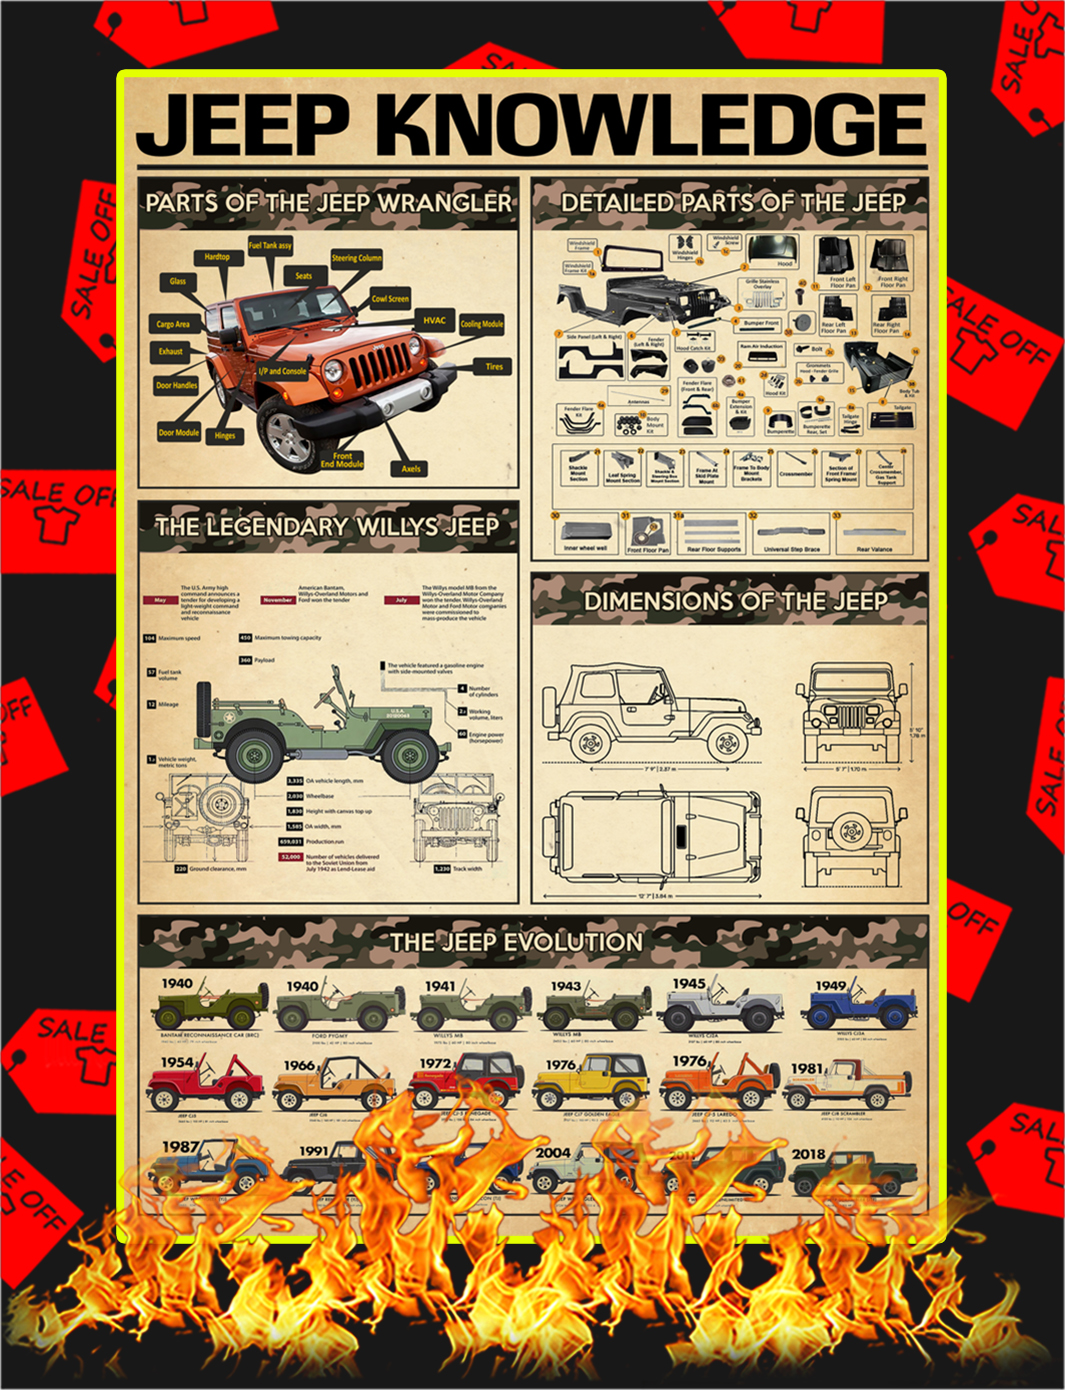 Jeep Knowledge poster - A4